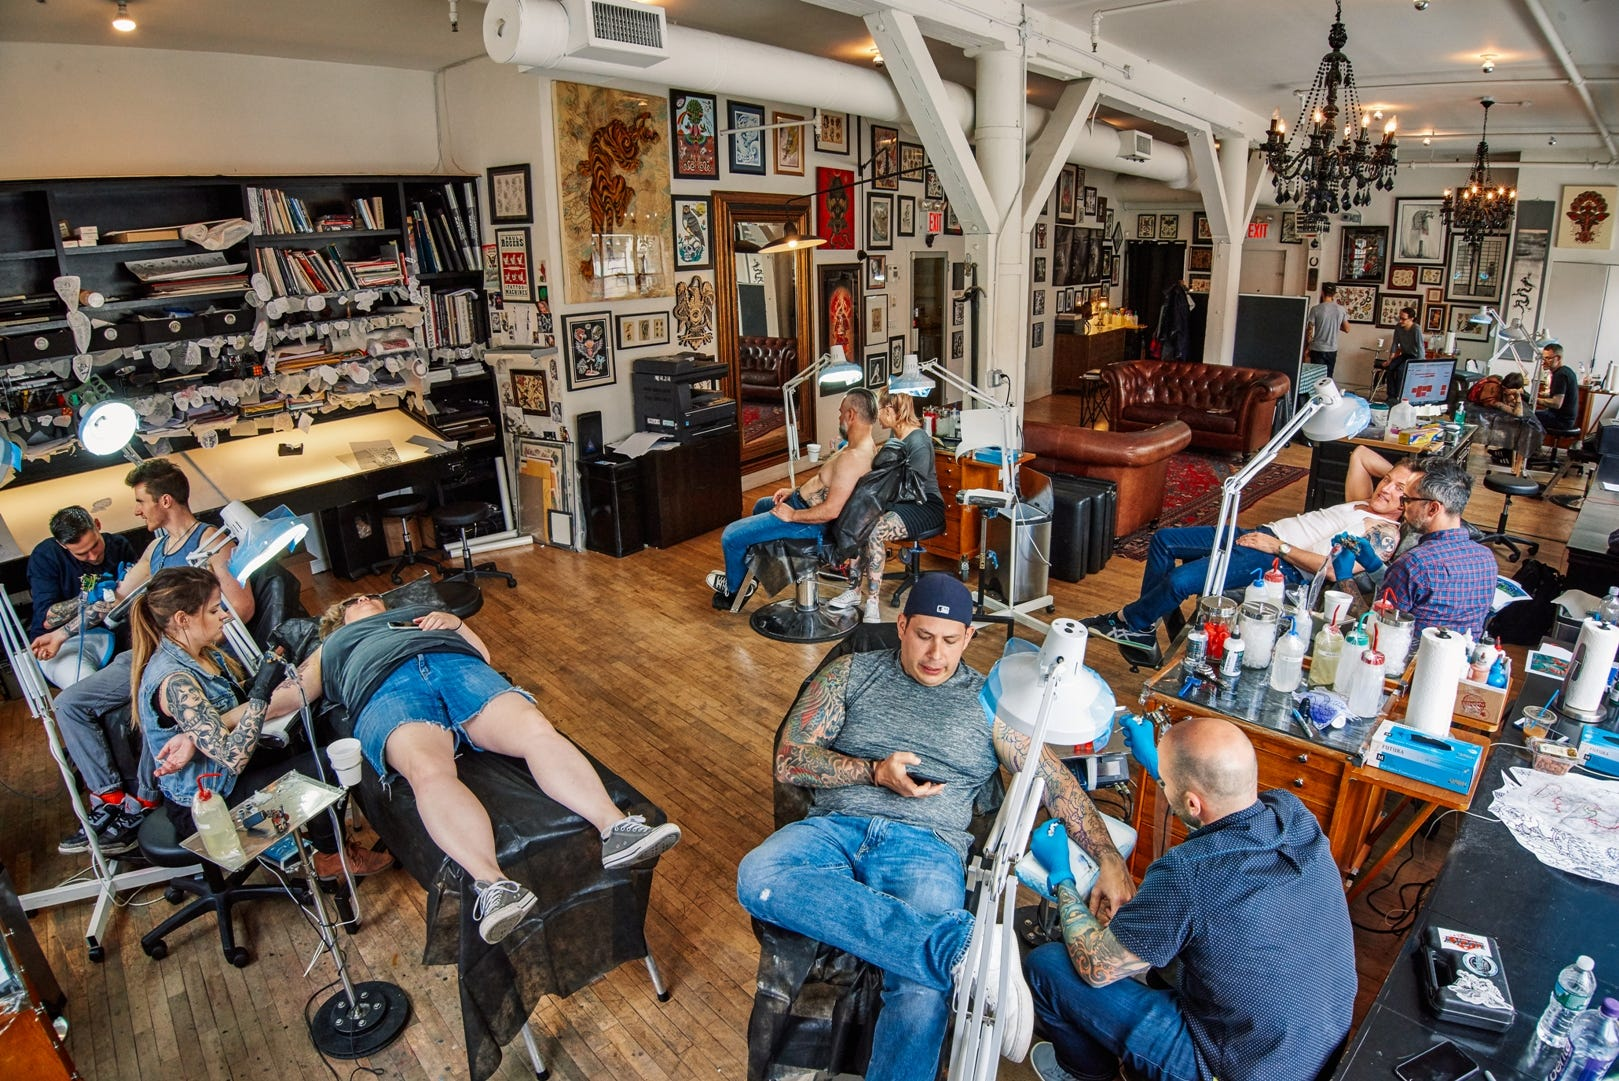 Tattoos on vacation: 10 great parlors for that forever souvenir | USA Today